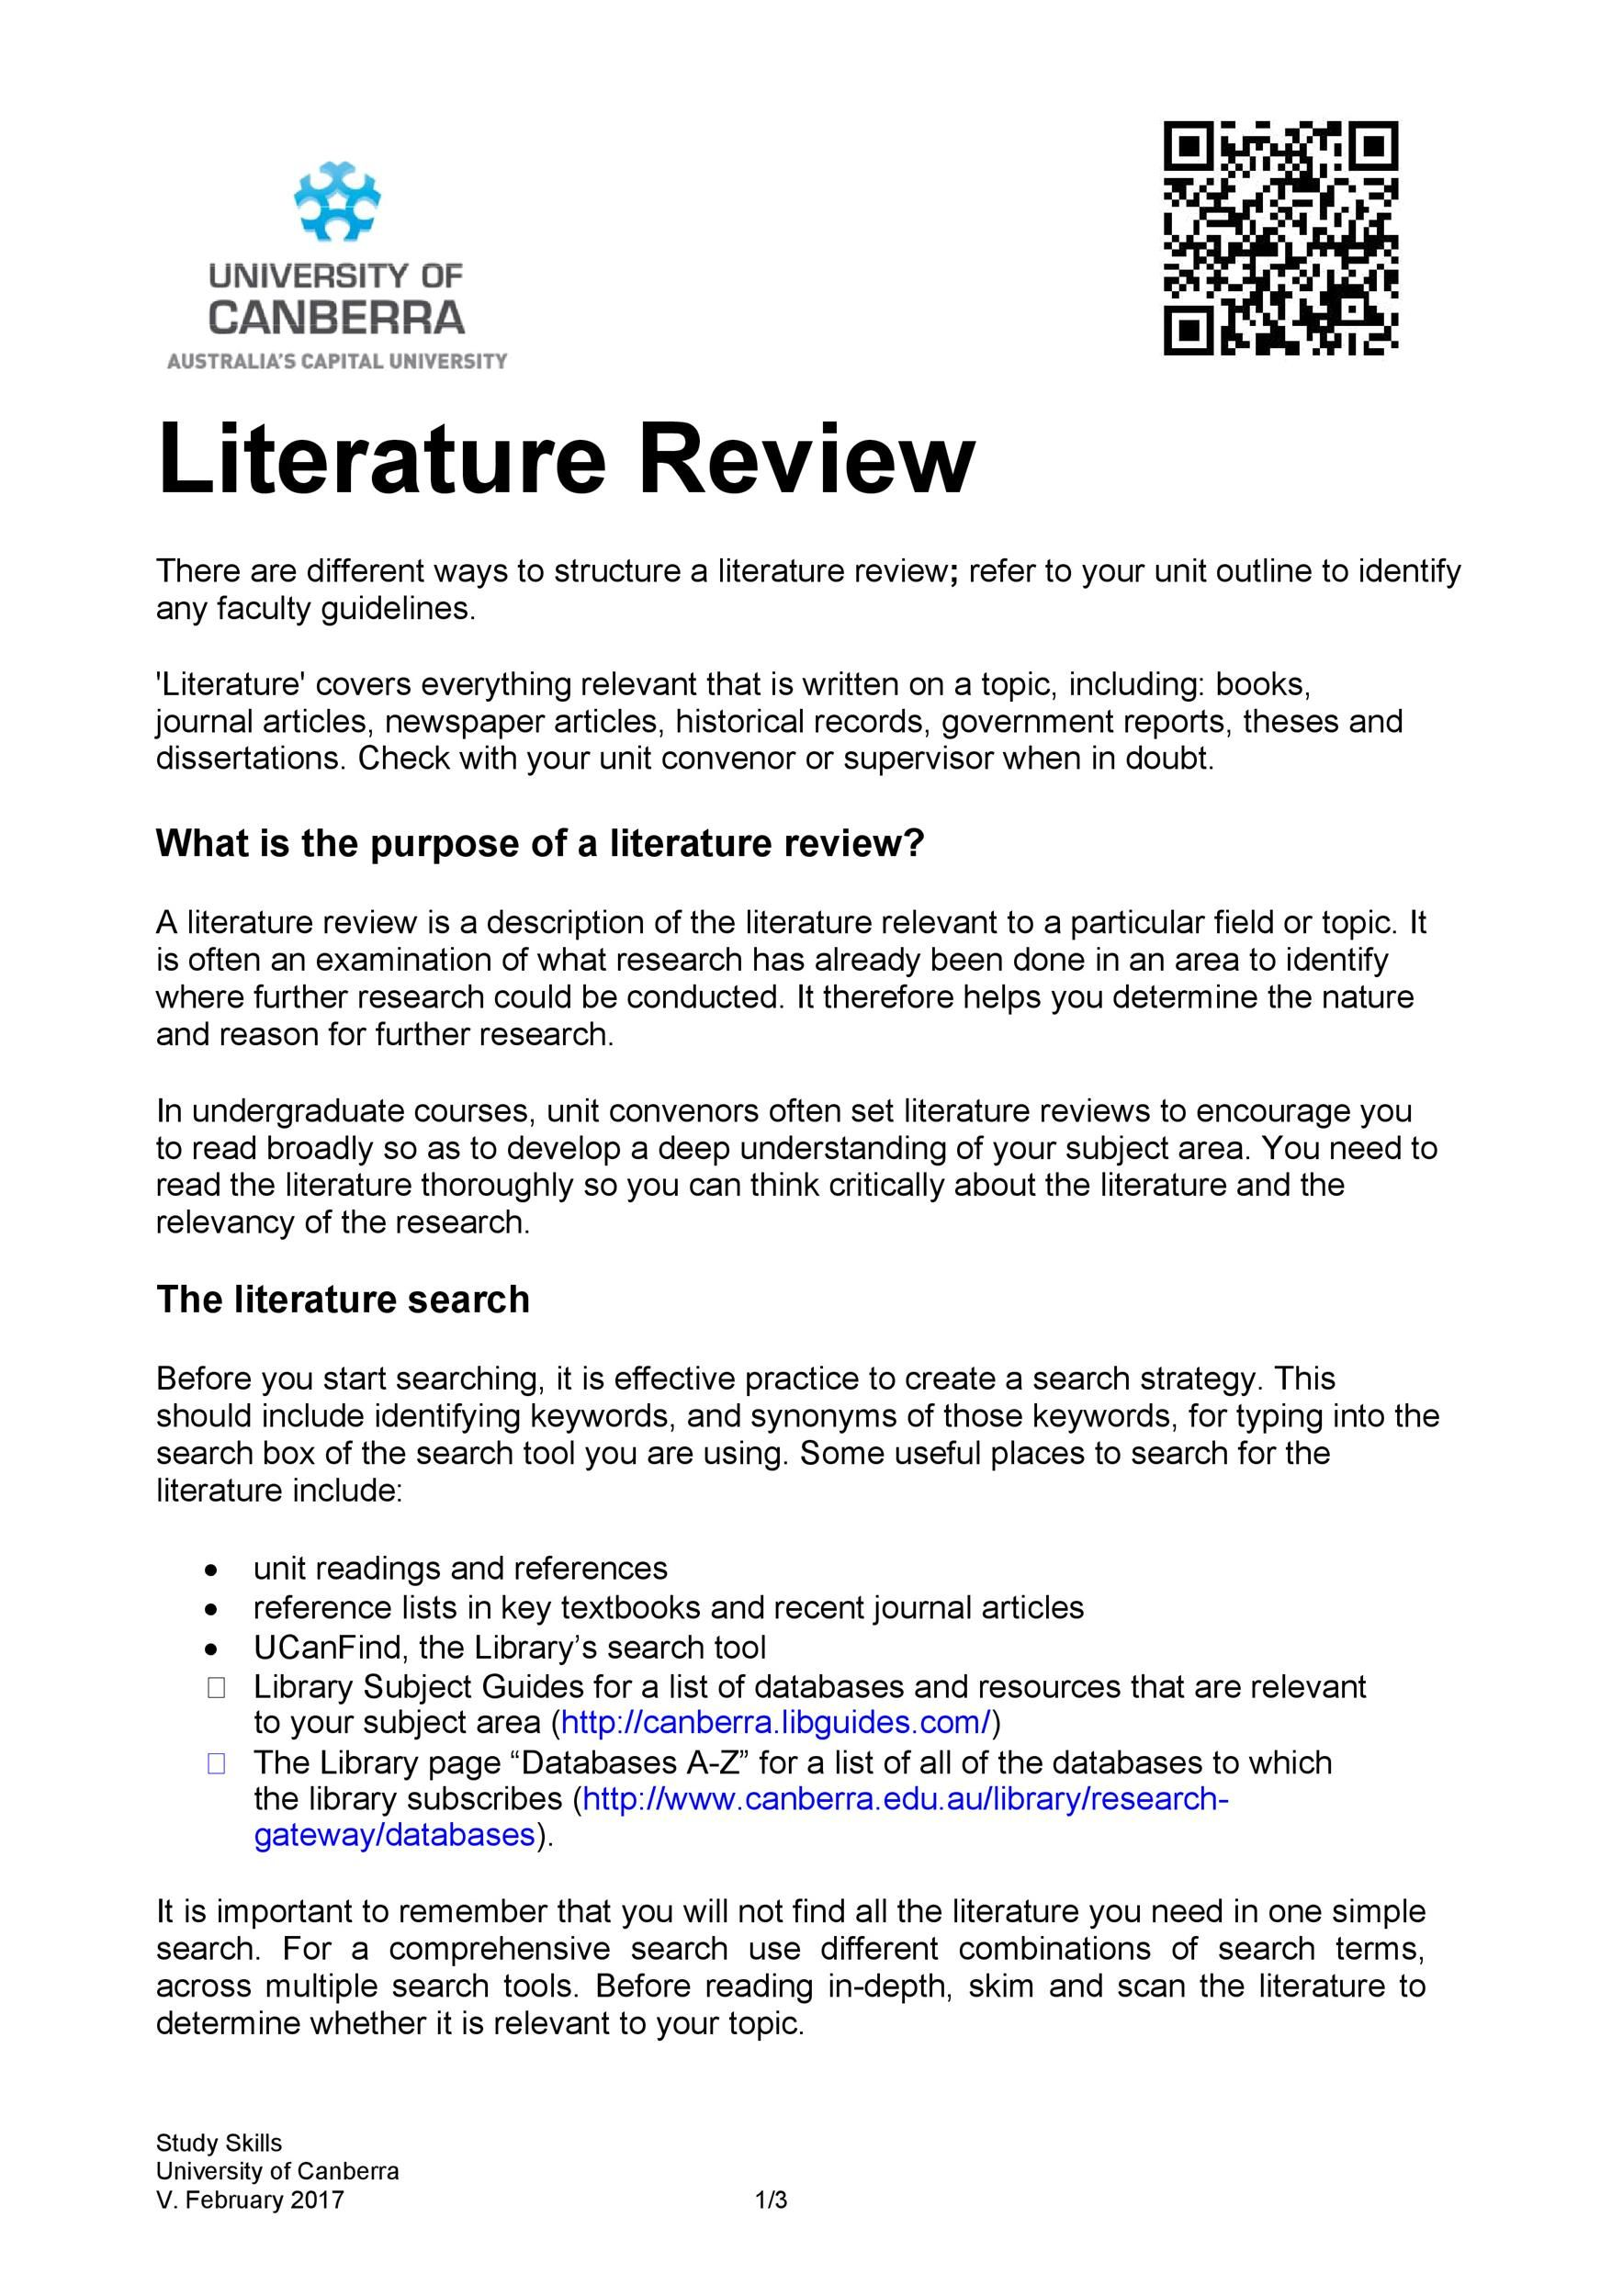 Download literature review template 25 in 25  Literature review